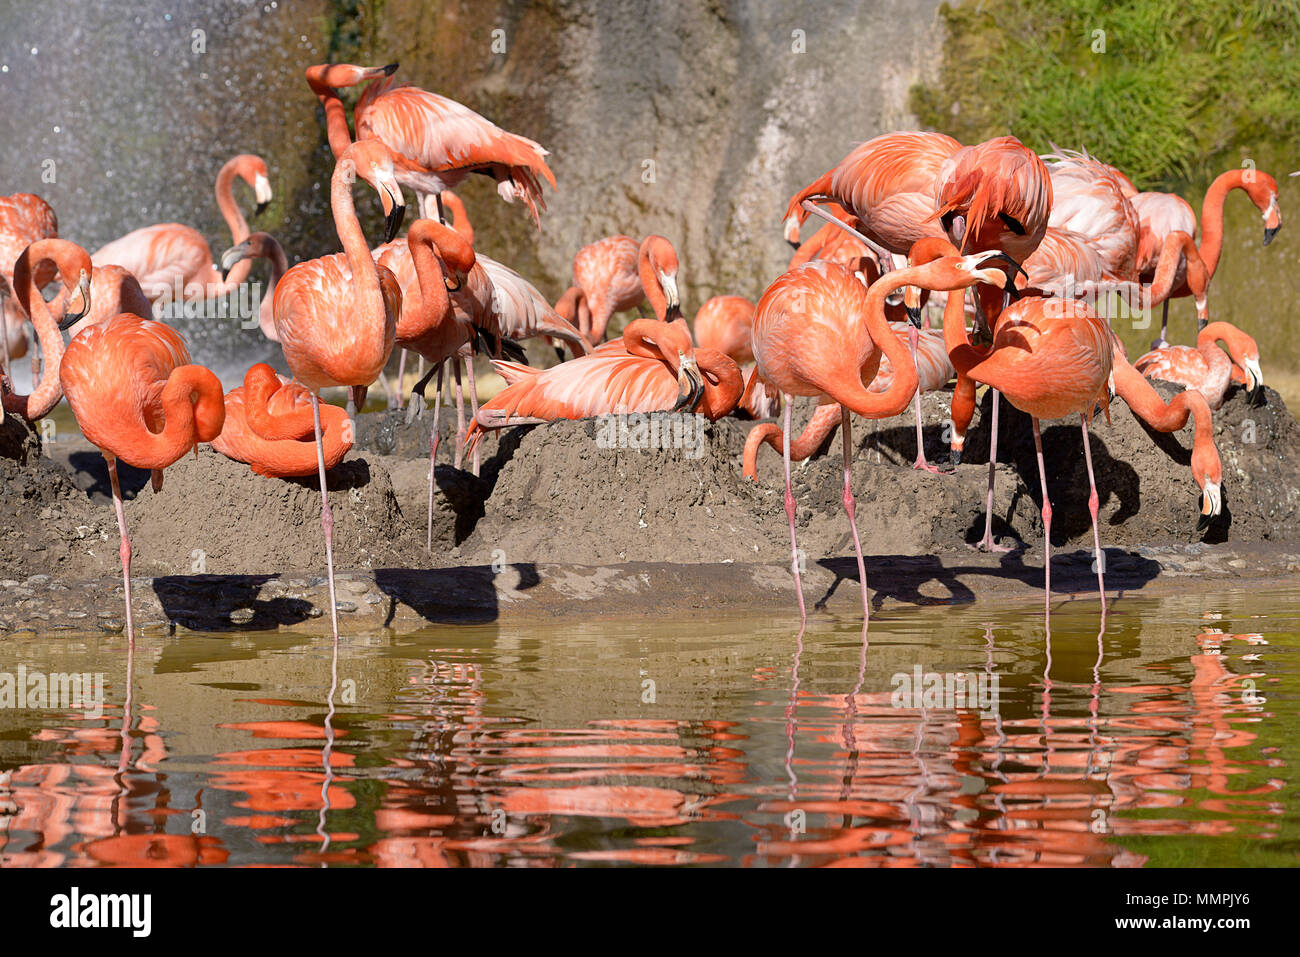 Group of Carribean flamingos (Phoenicopterus ruber) in water and on their ground nests Stock Photo